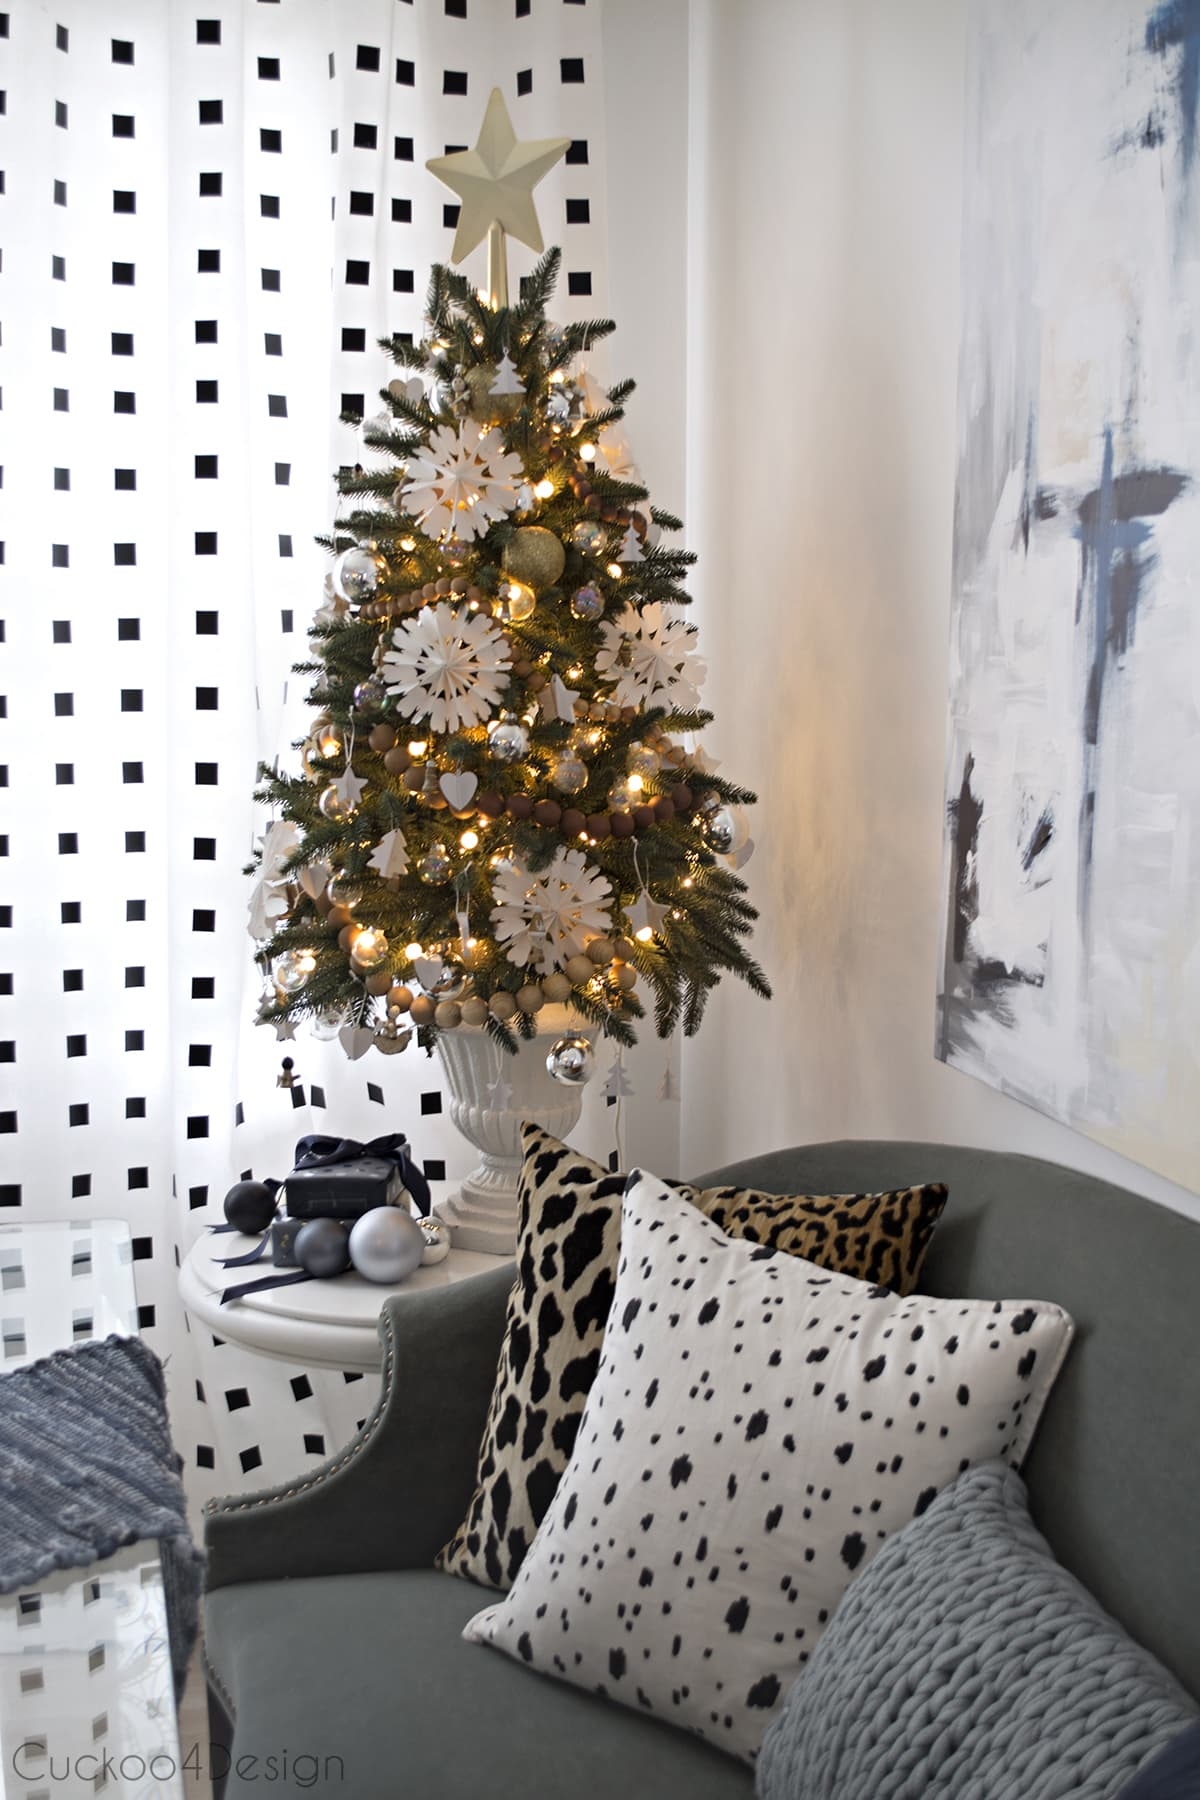 my favorite artificial Christmas trees | white, wood and gold Christmas decor with white snowflakes